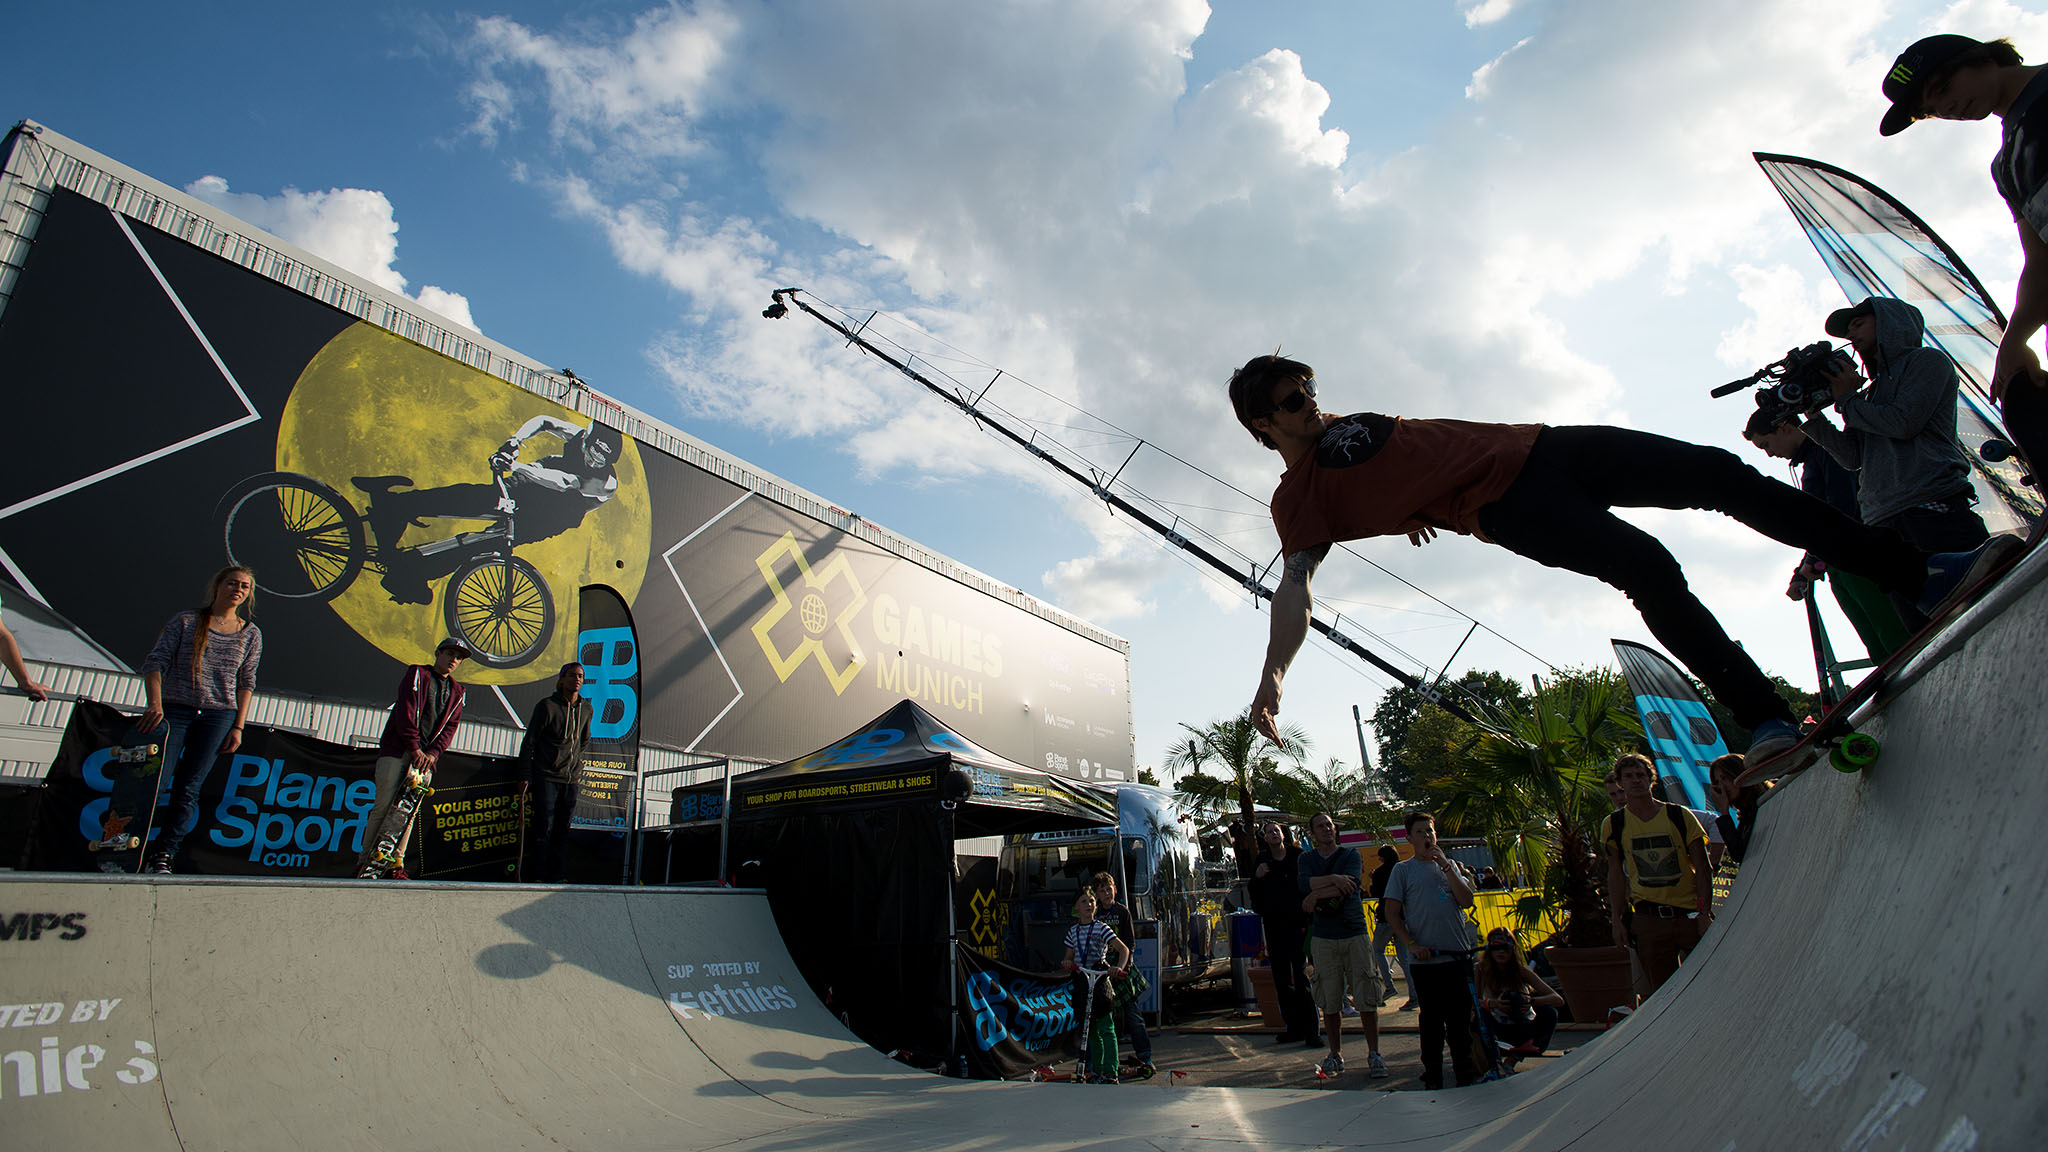 X Games Munich fans have been enjoying a special, expanded version of the usual X Fest space at this event, with a Cultural Village offering skate and BMX demos, live mural painting and even tattooing on site.